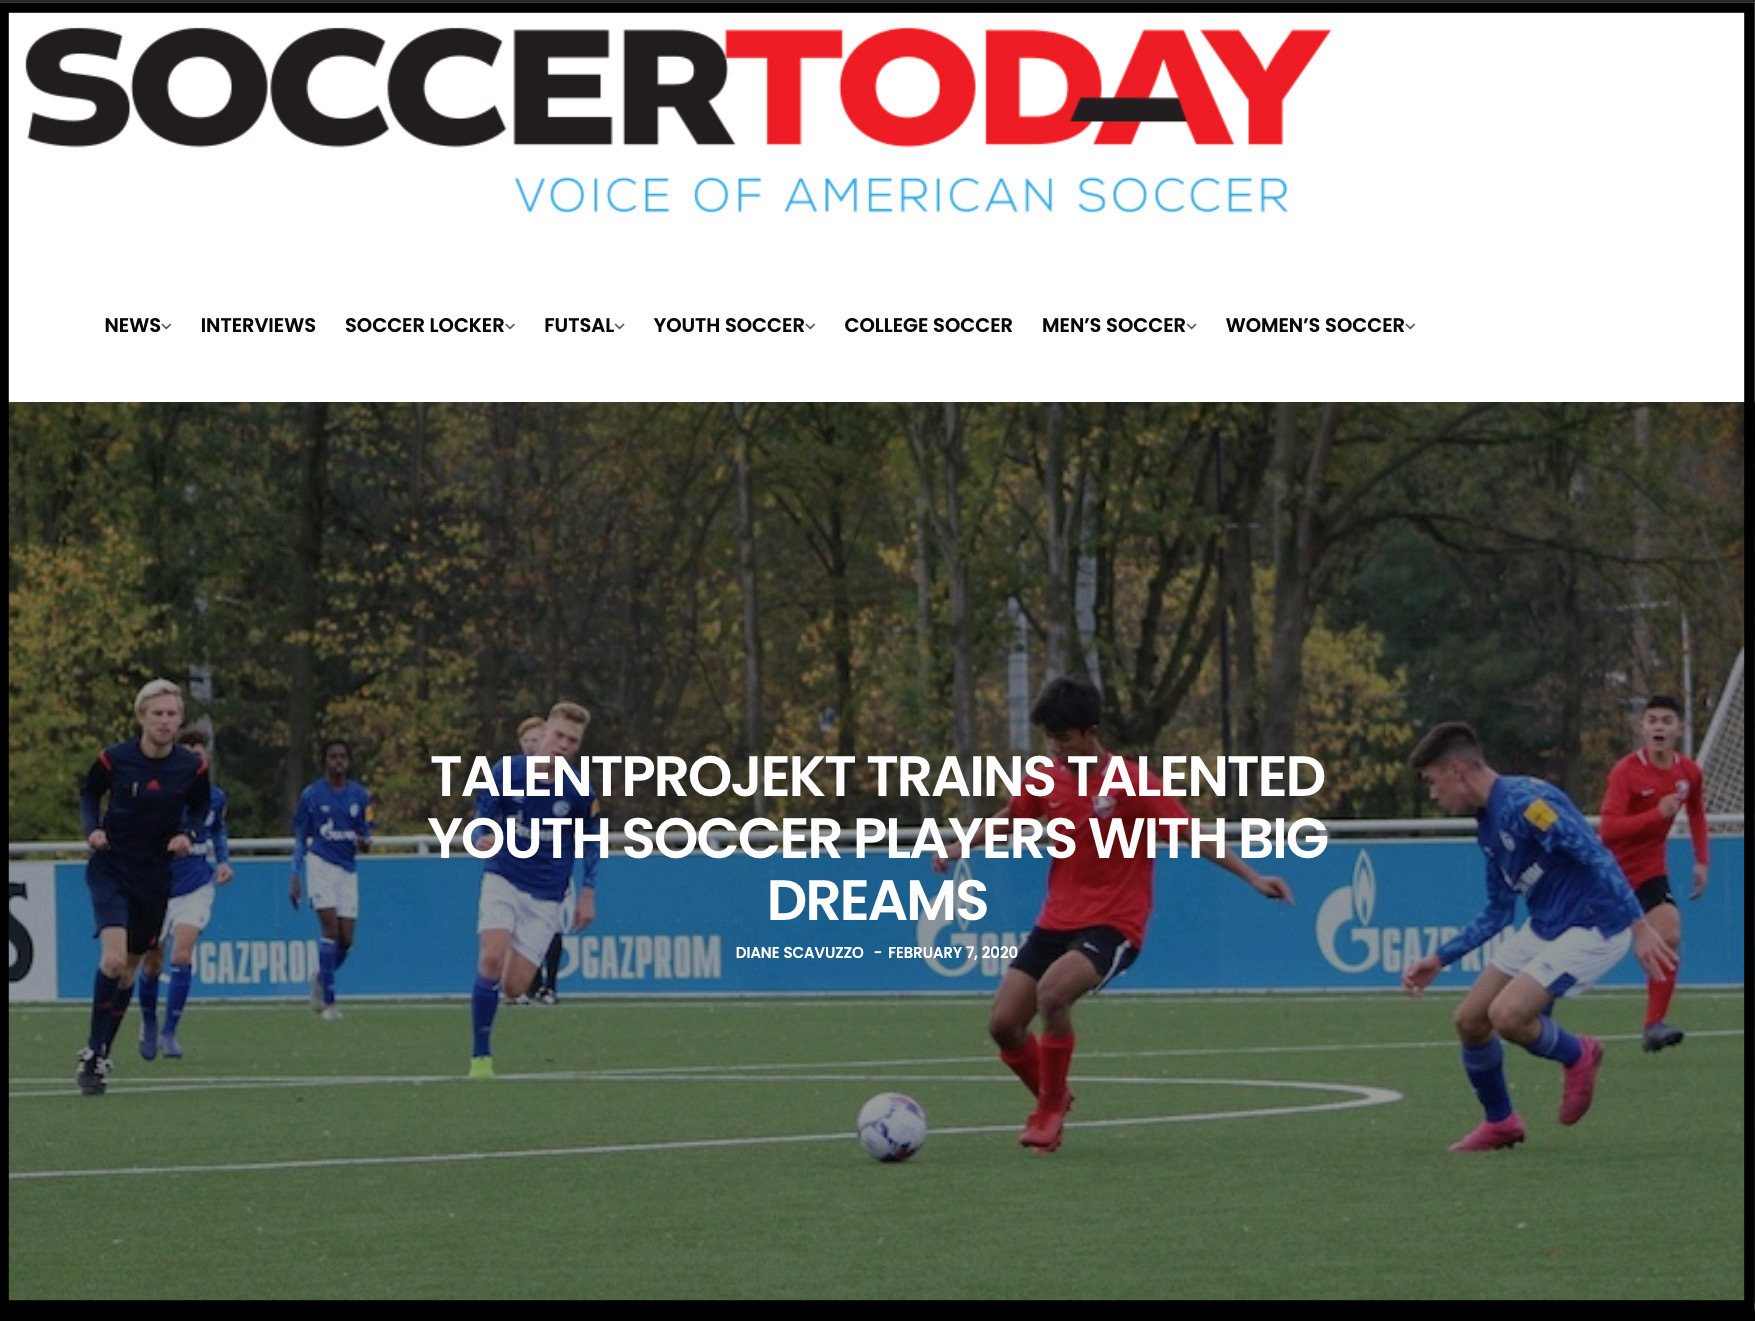 Soccer Today Article Feb 2020